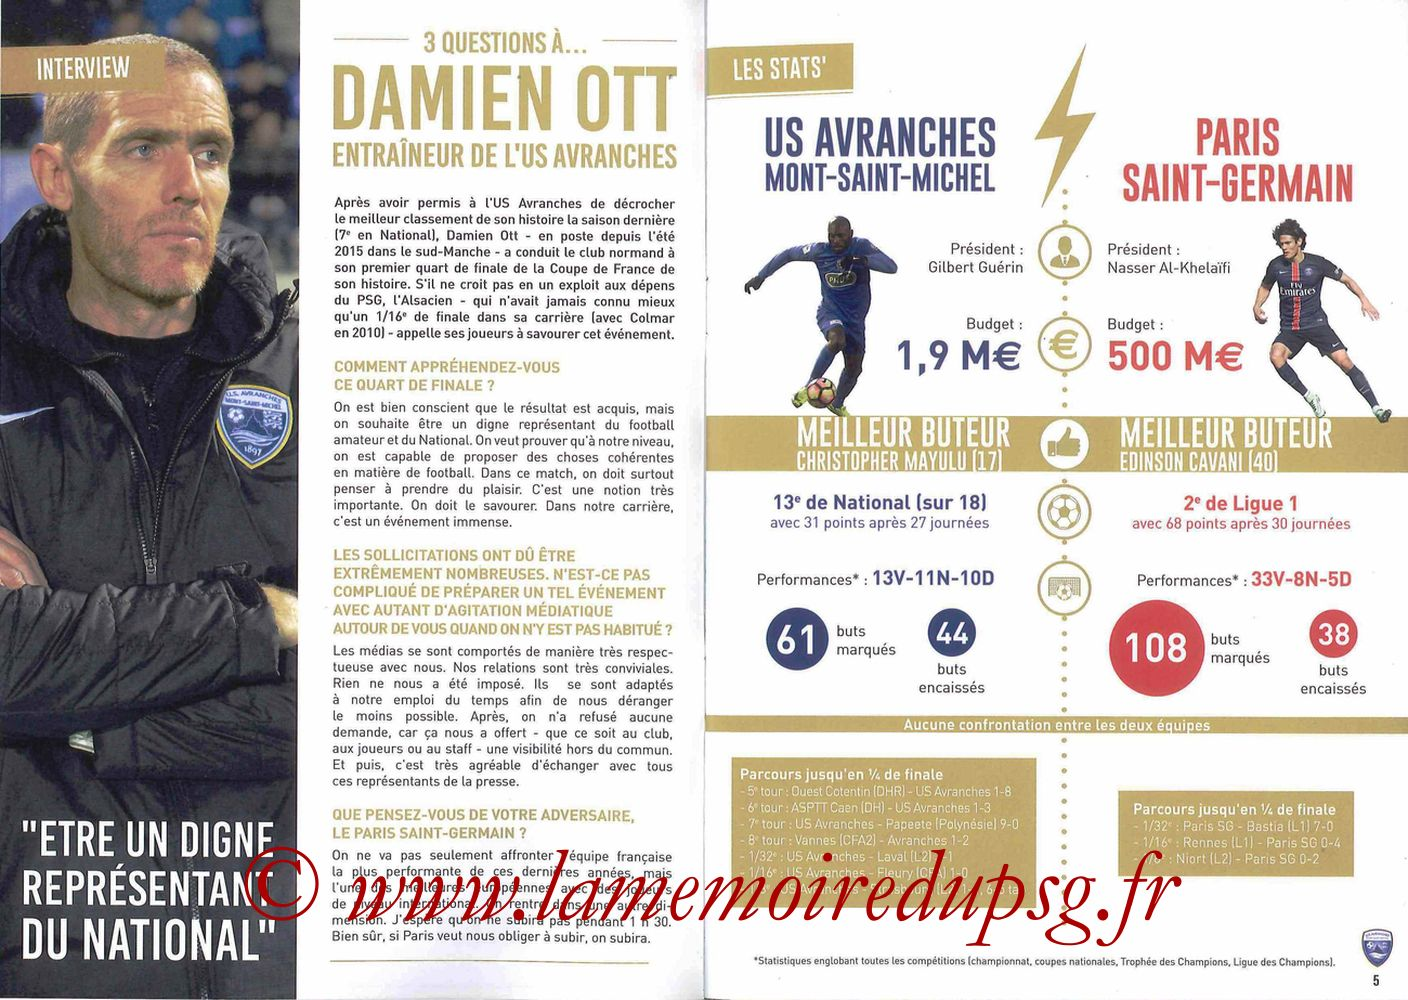 2017-04-05  Avranches-PSG (Quart CF à Caen, Programme officiel) - Pages 04 et 05